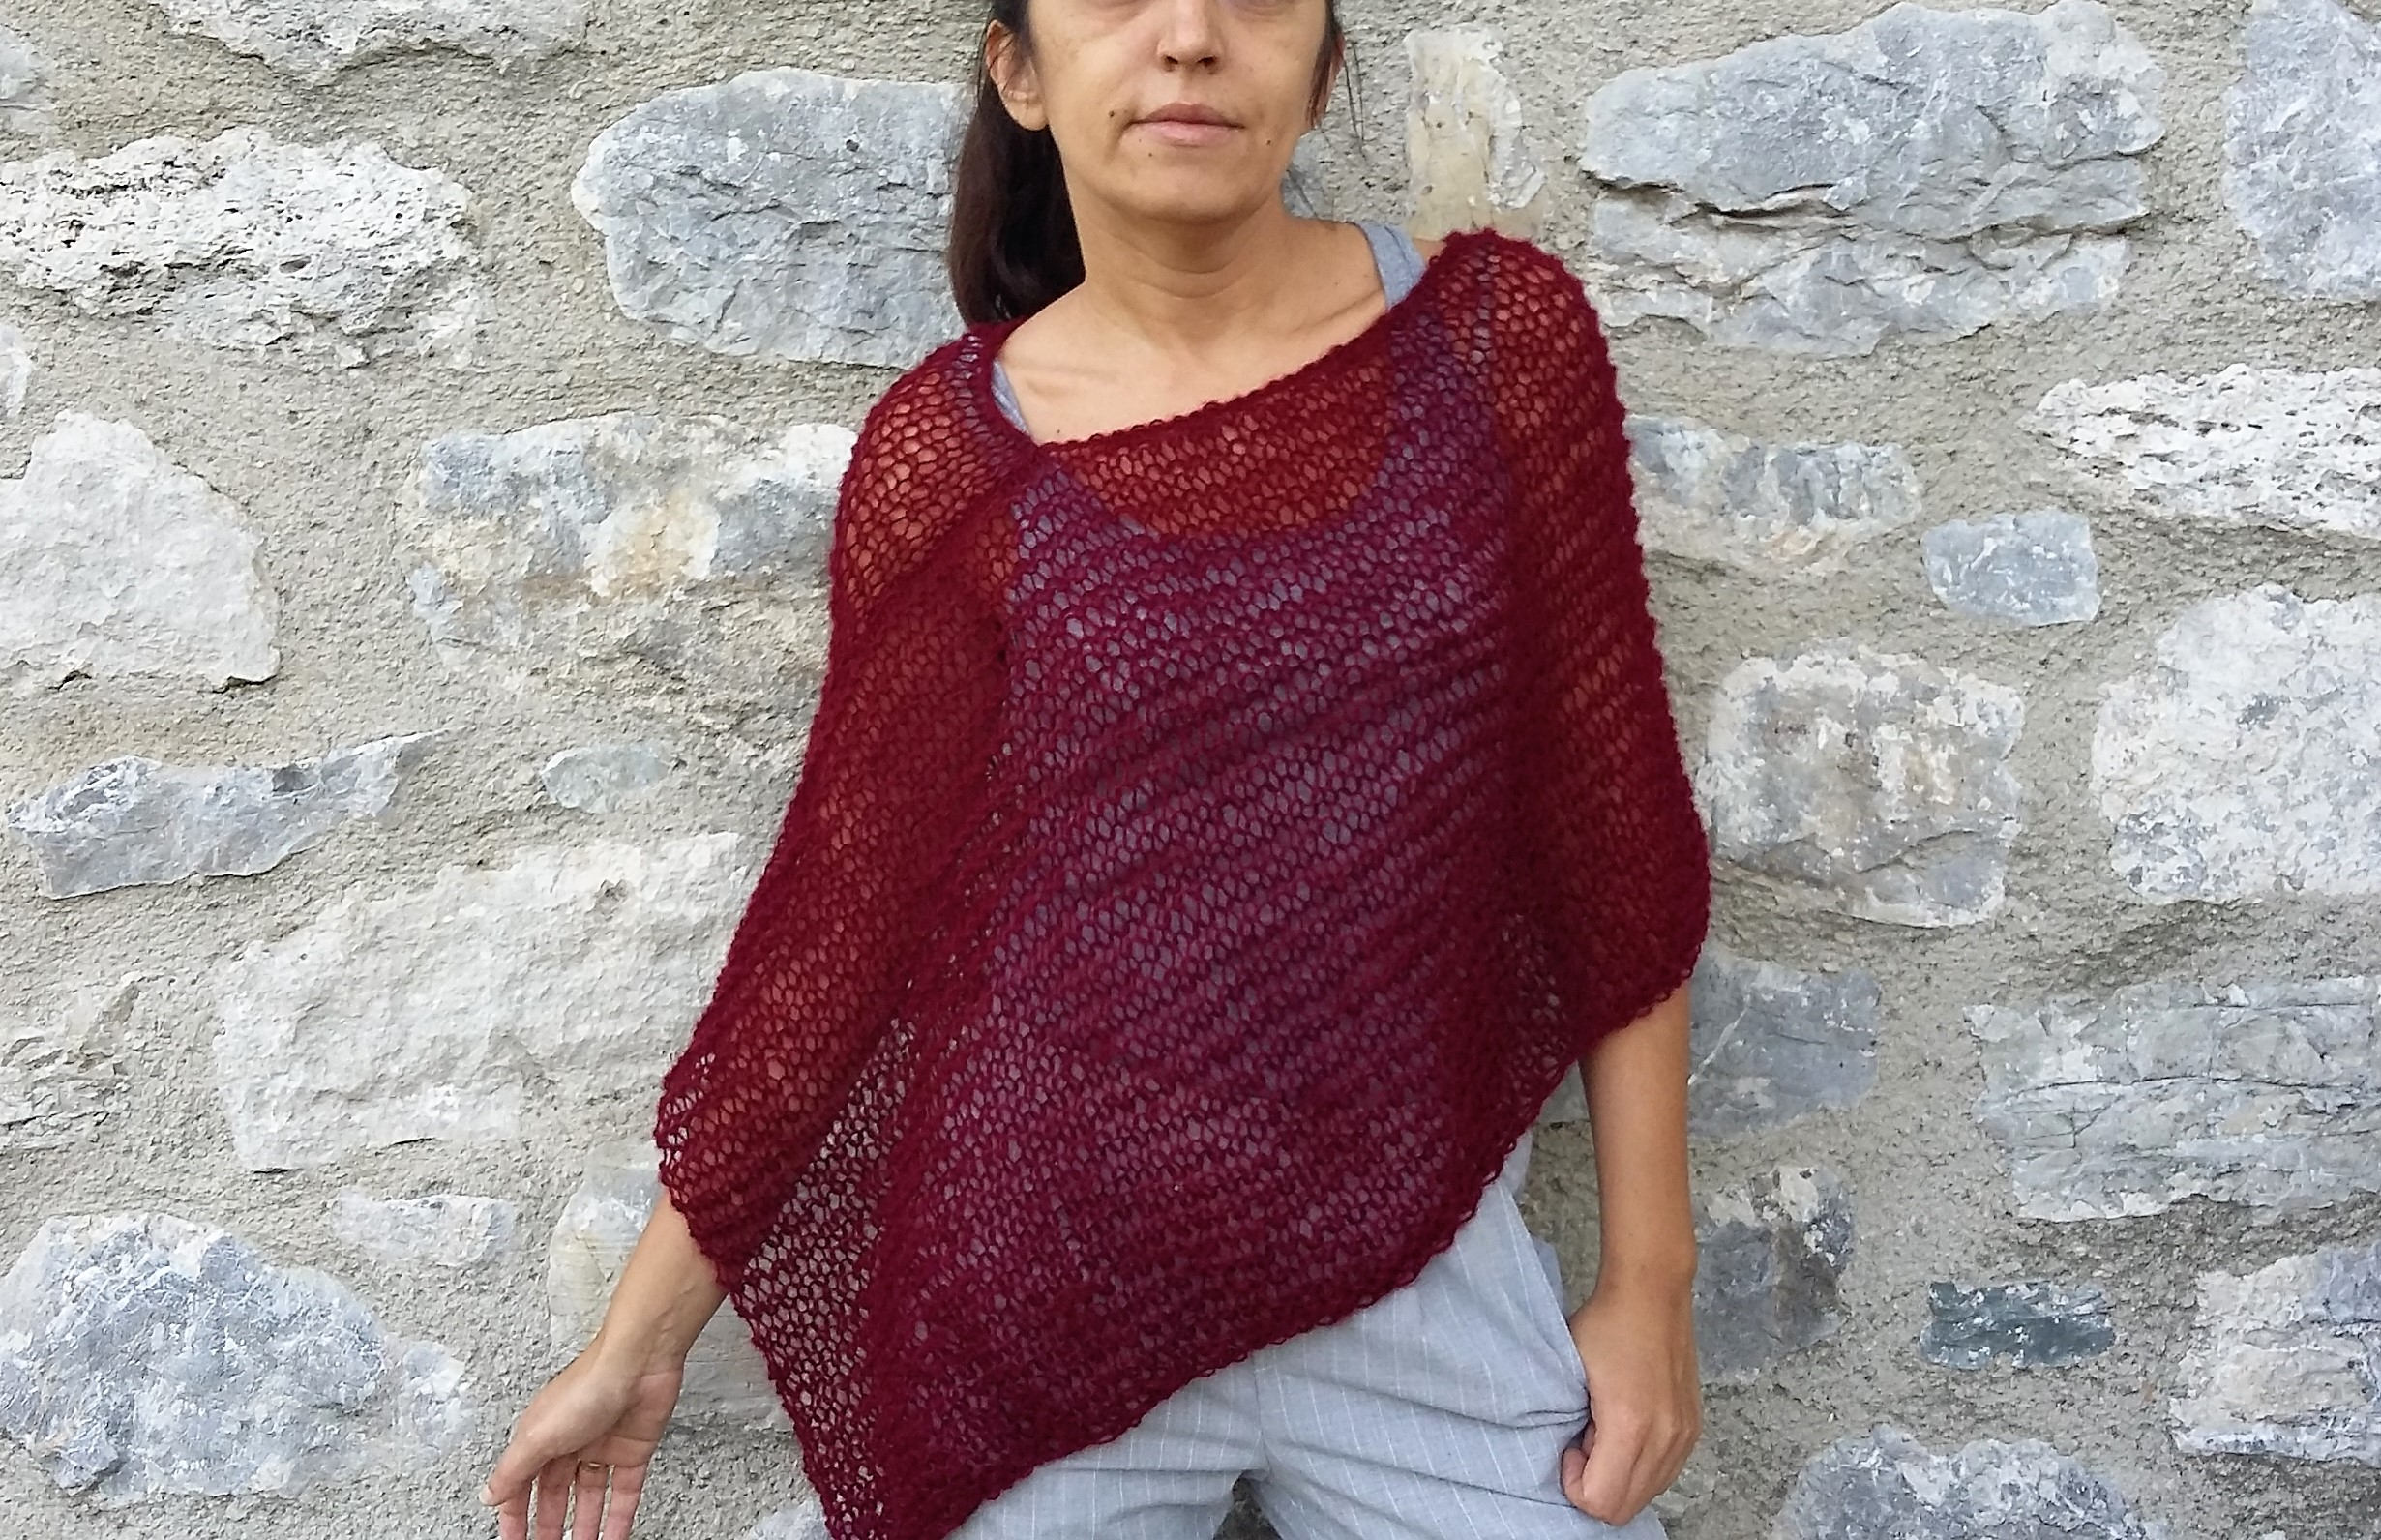 Increíble How To Knit A Poncho For Beginners Pattern Molde - Manta ...